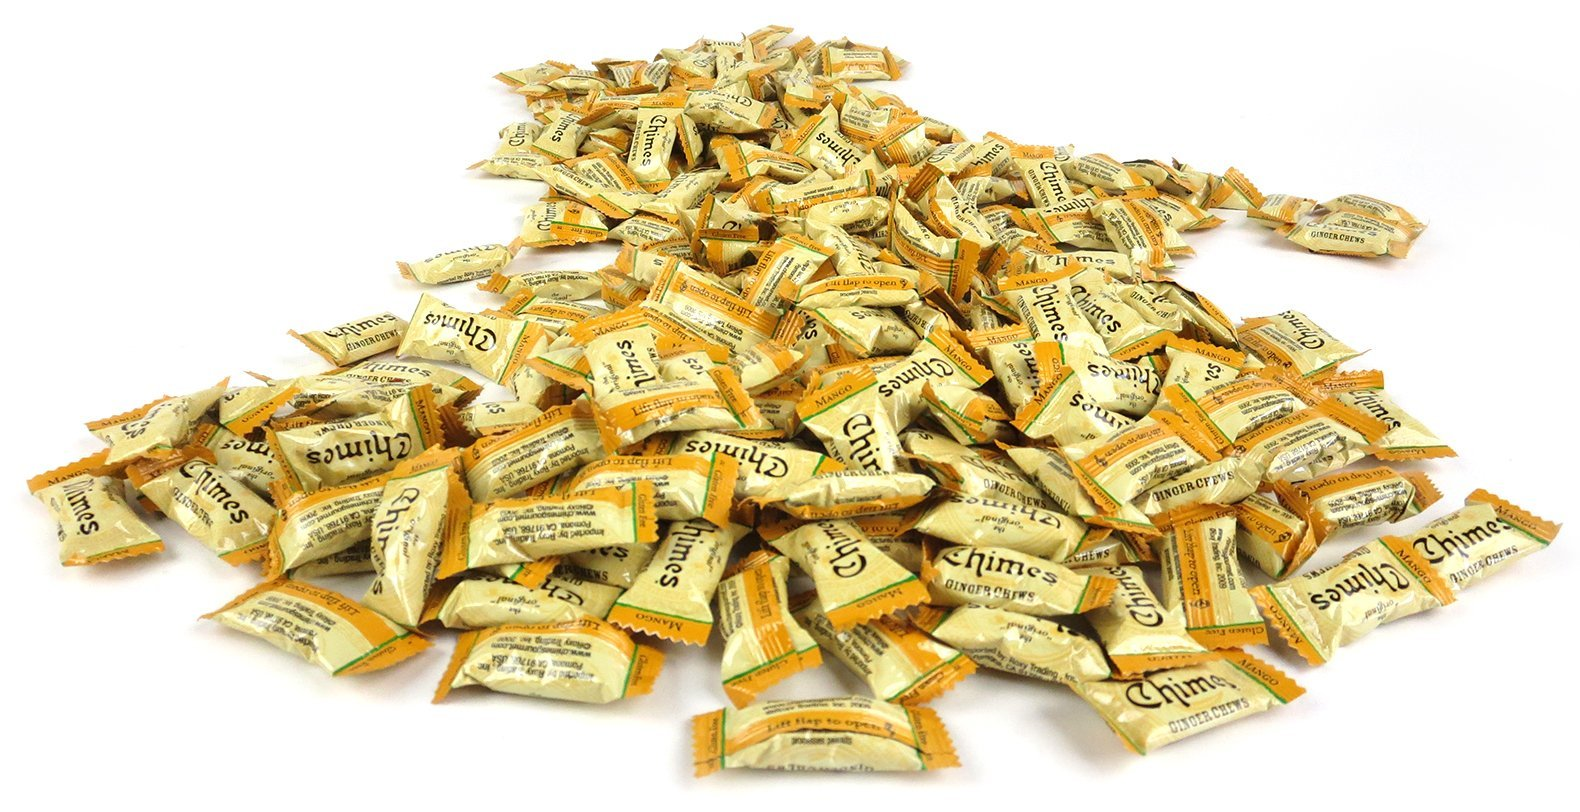 Chimes Mango Ginger Chews, 3 lb Bag in a BlackTie Box by Black Tie Mercantile (Image #4)